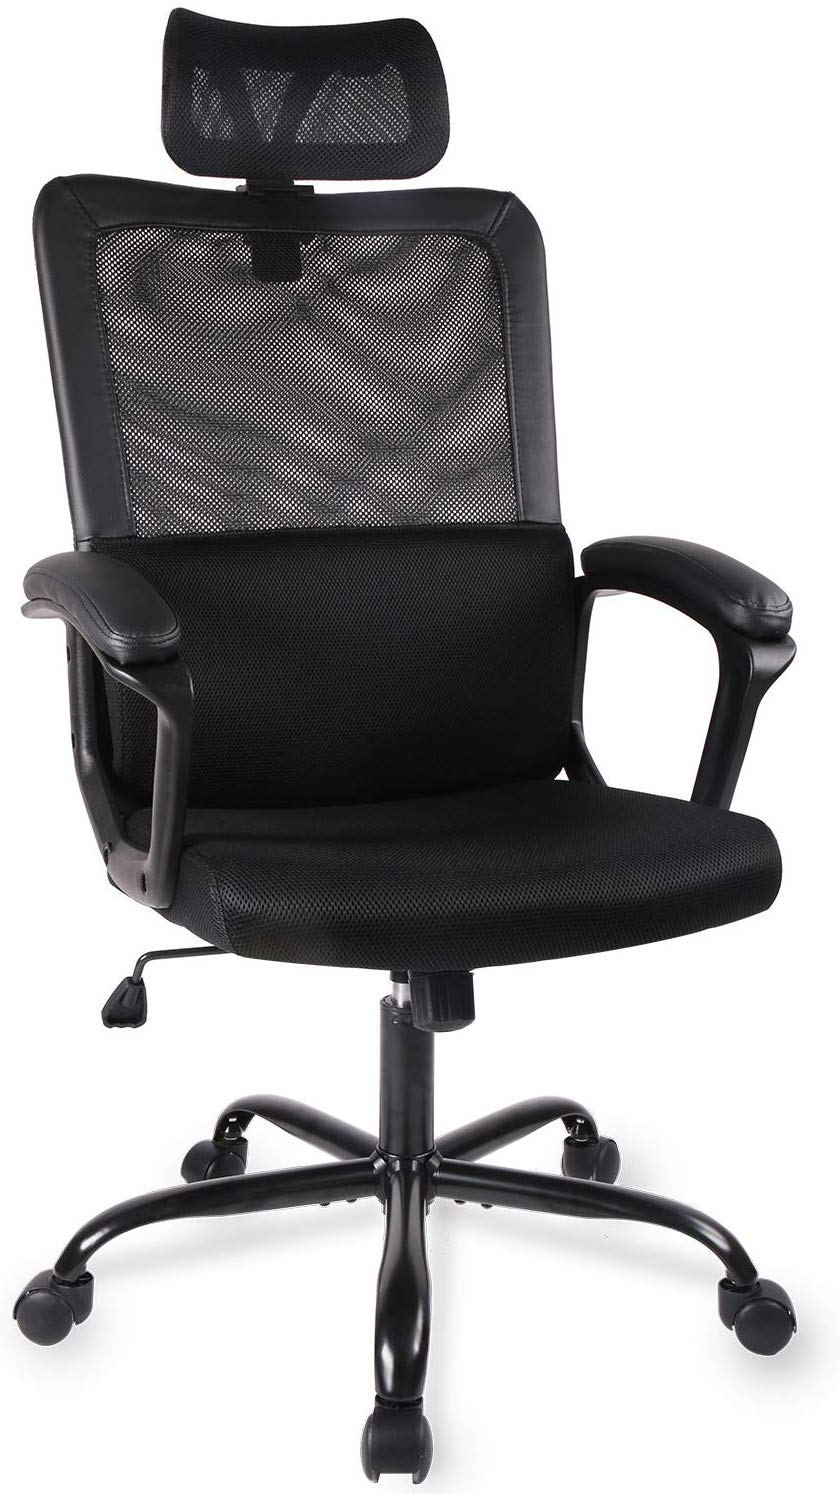 SMUGDESK Ergonomic Office Chair, High Back Mesh Desk Office Chair Adjustable Headrest Computer Task Chair